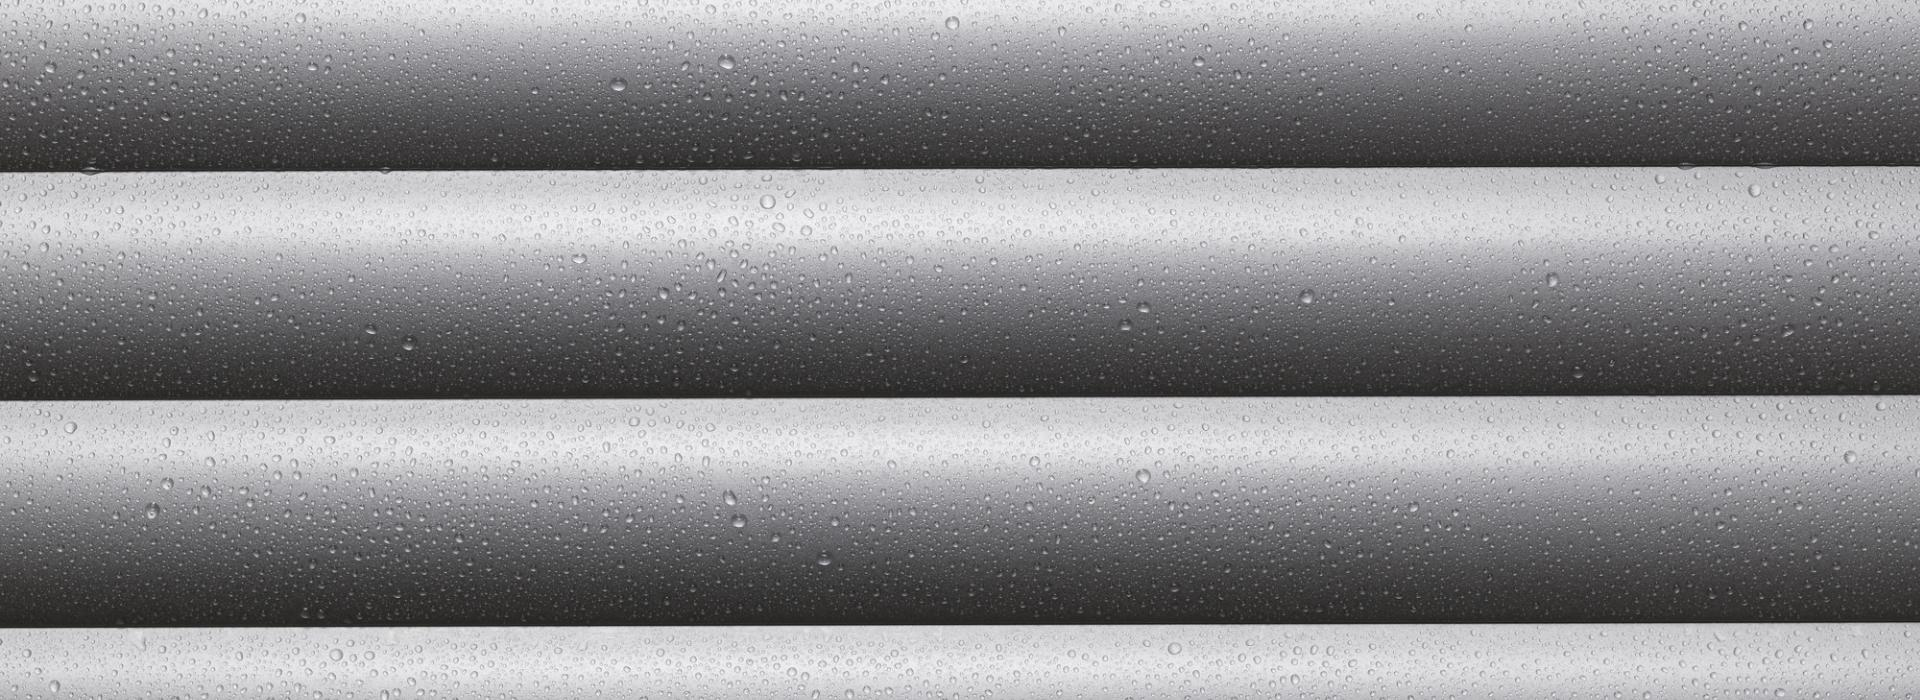 Roller shutter profile detailed view with water drops